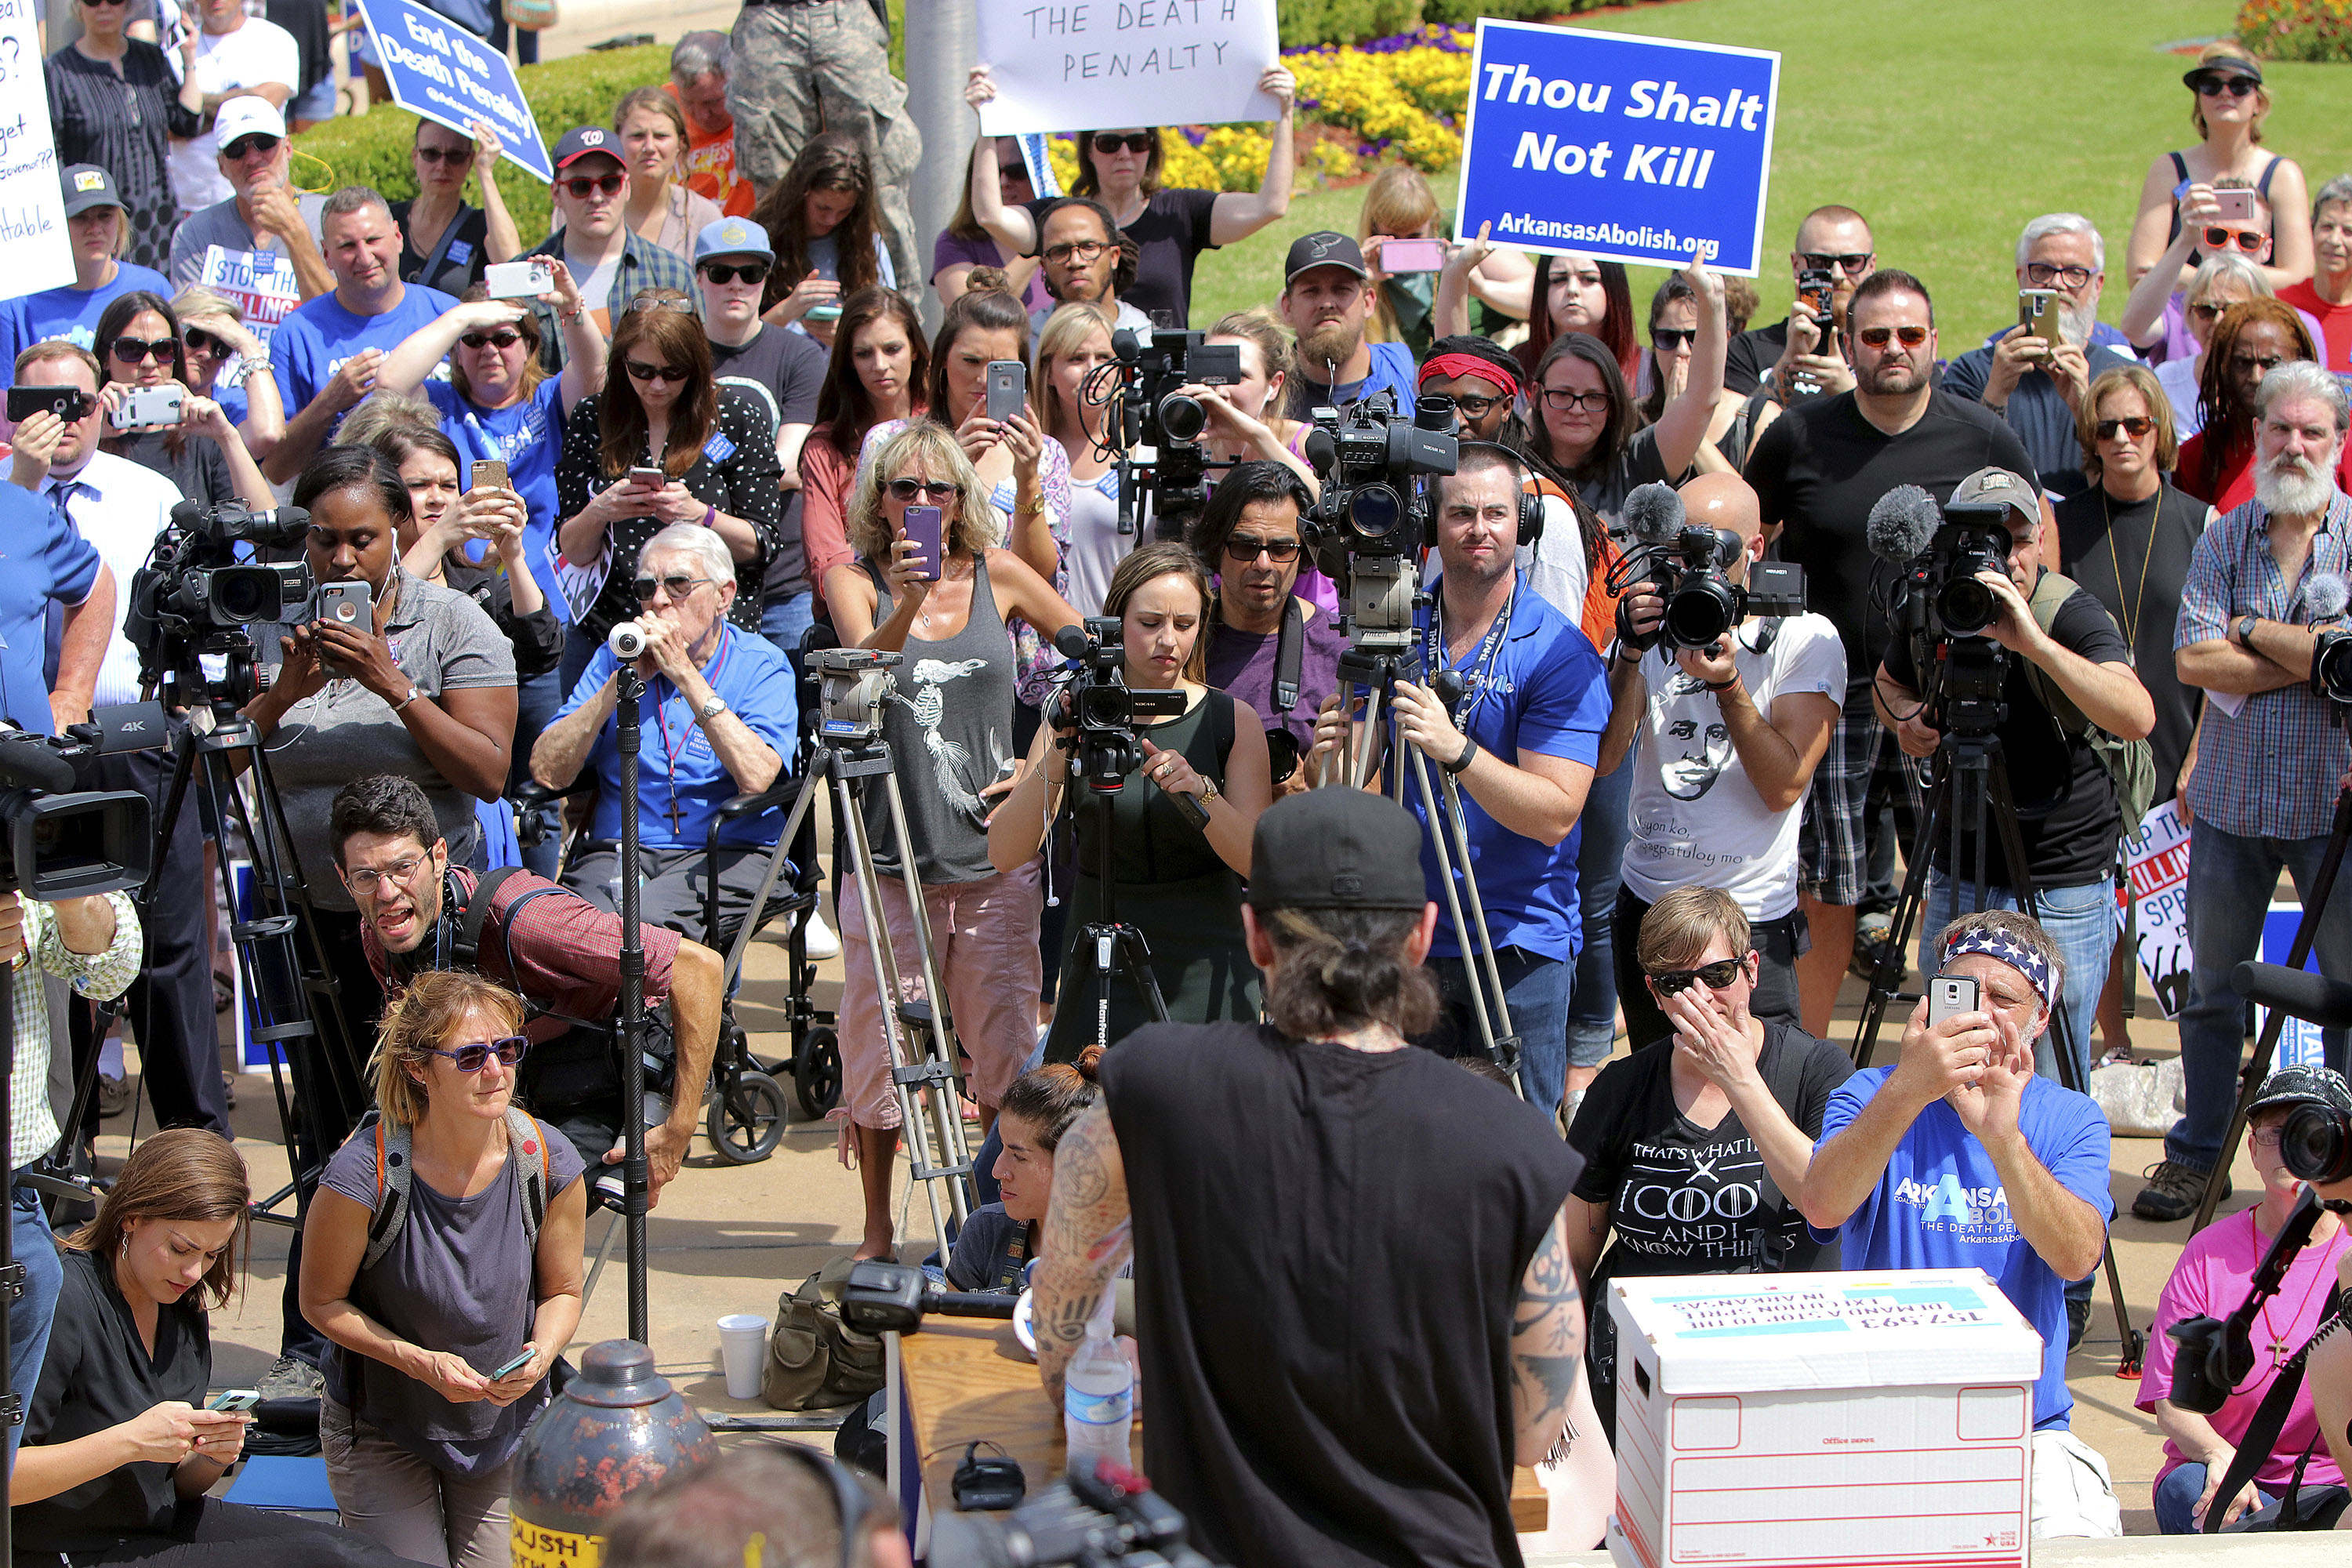 Former Arkansas death row inmate Damien Echols, center, back to camera, speaks at rally opposing the state's upcoming executions, on the front steps of Arkansas' Capitol, Friday, April 14, 2017, in Little Rock, Ark. (Stephen B. Thornton/The Arkansas Democrat-Gazette via AP)